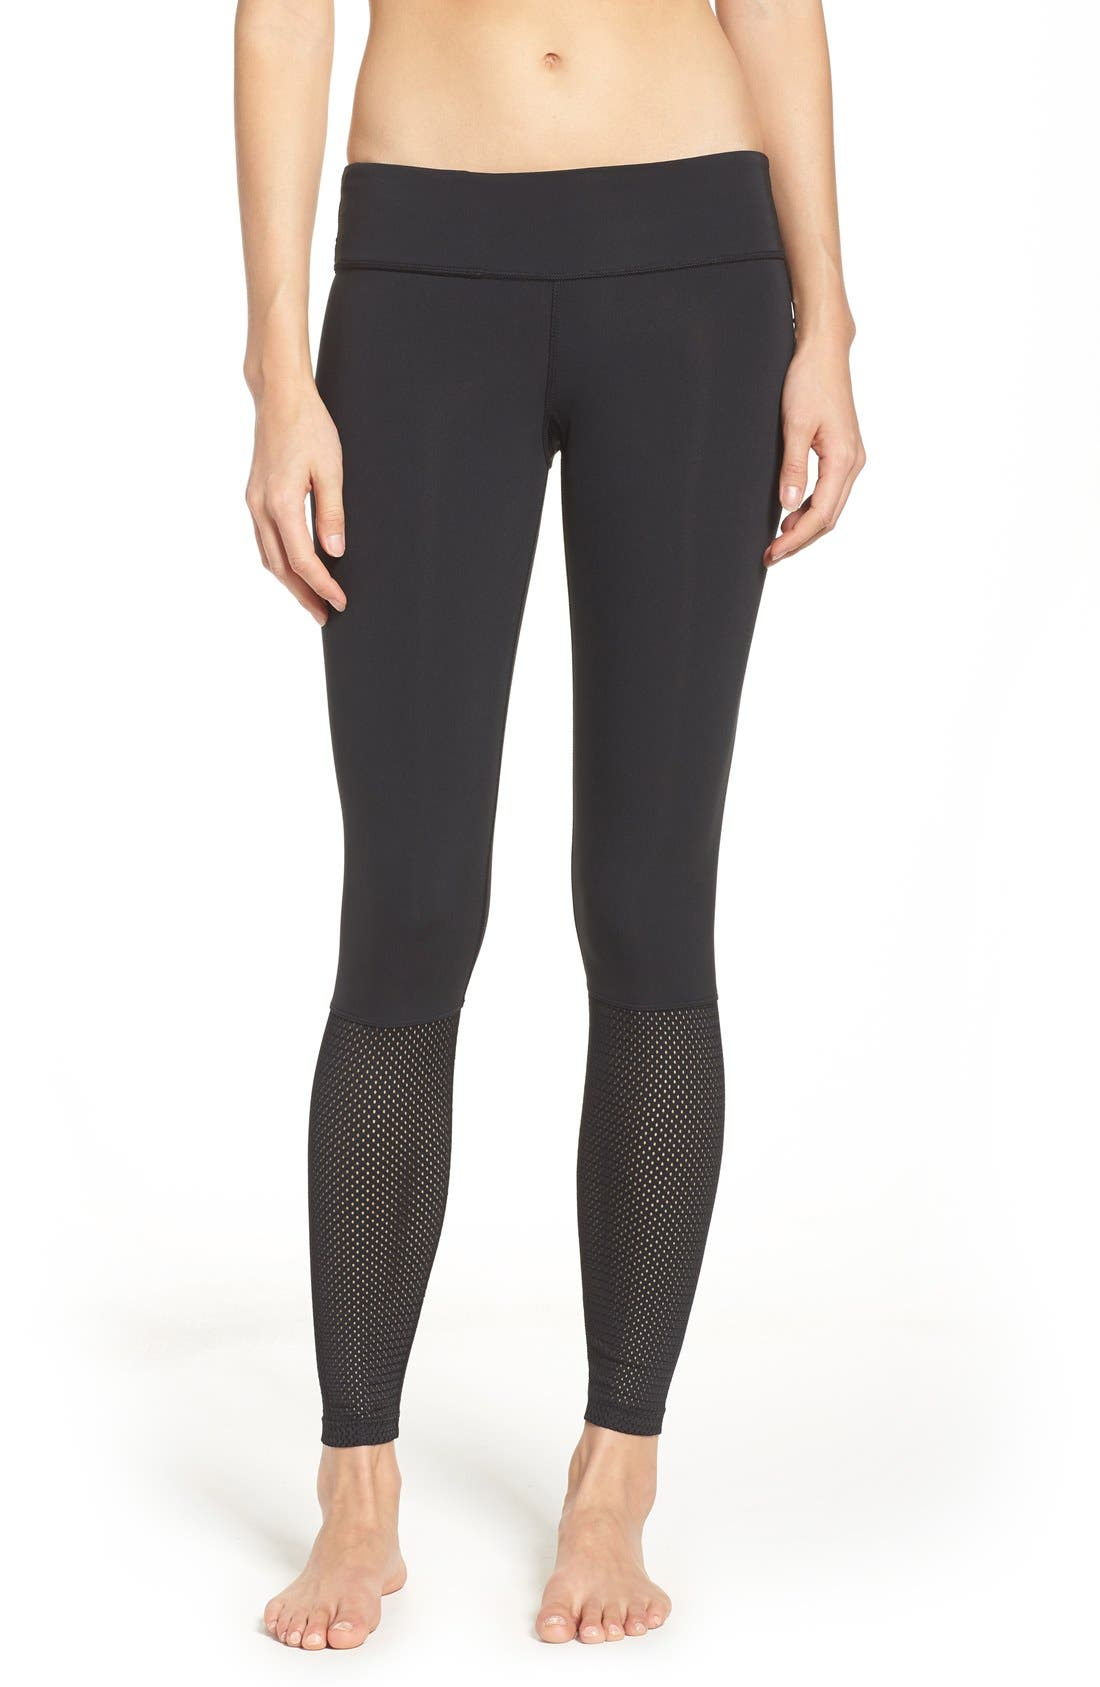 SPLITS59 Hurdle Leggings